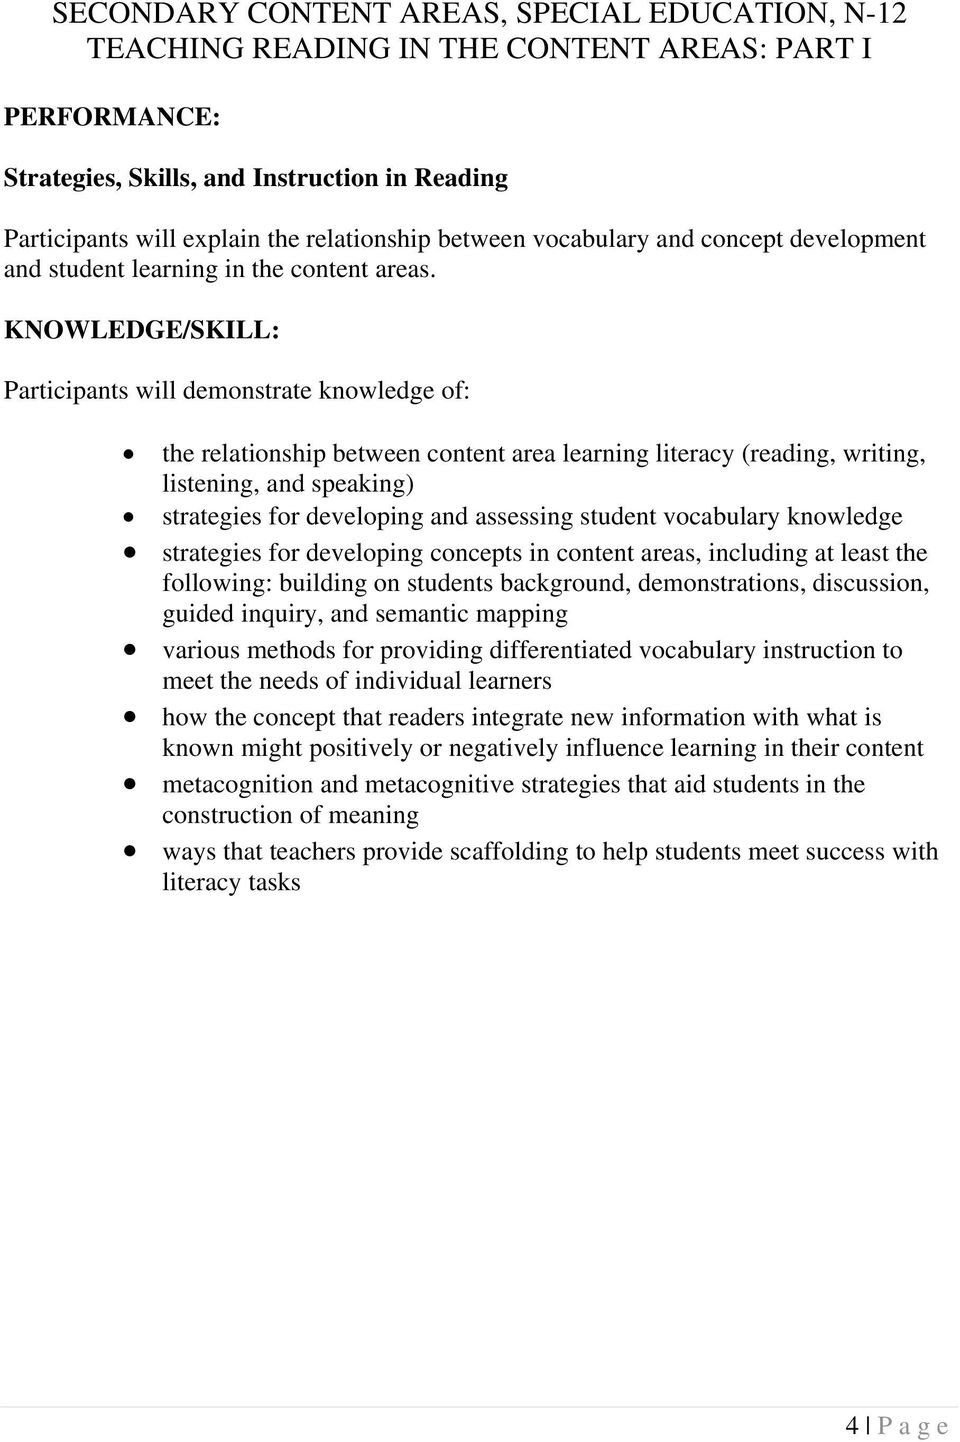 the relationship between content area learning literacy (reading, writing, listening, and speaking) strategies for developing and assessing student vocabulary knowledge strategies for developing